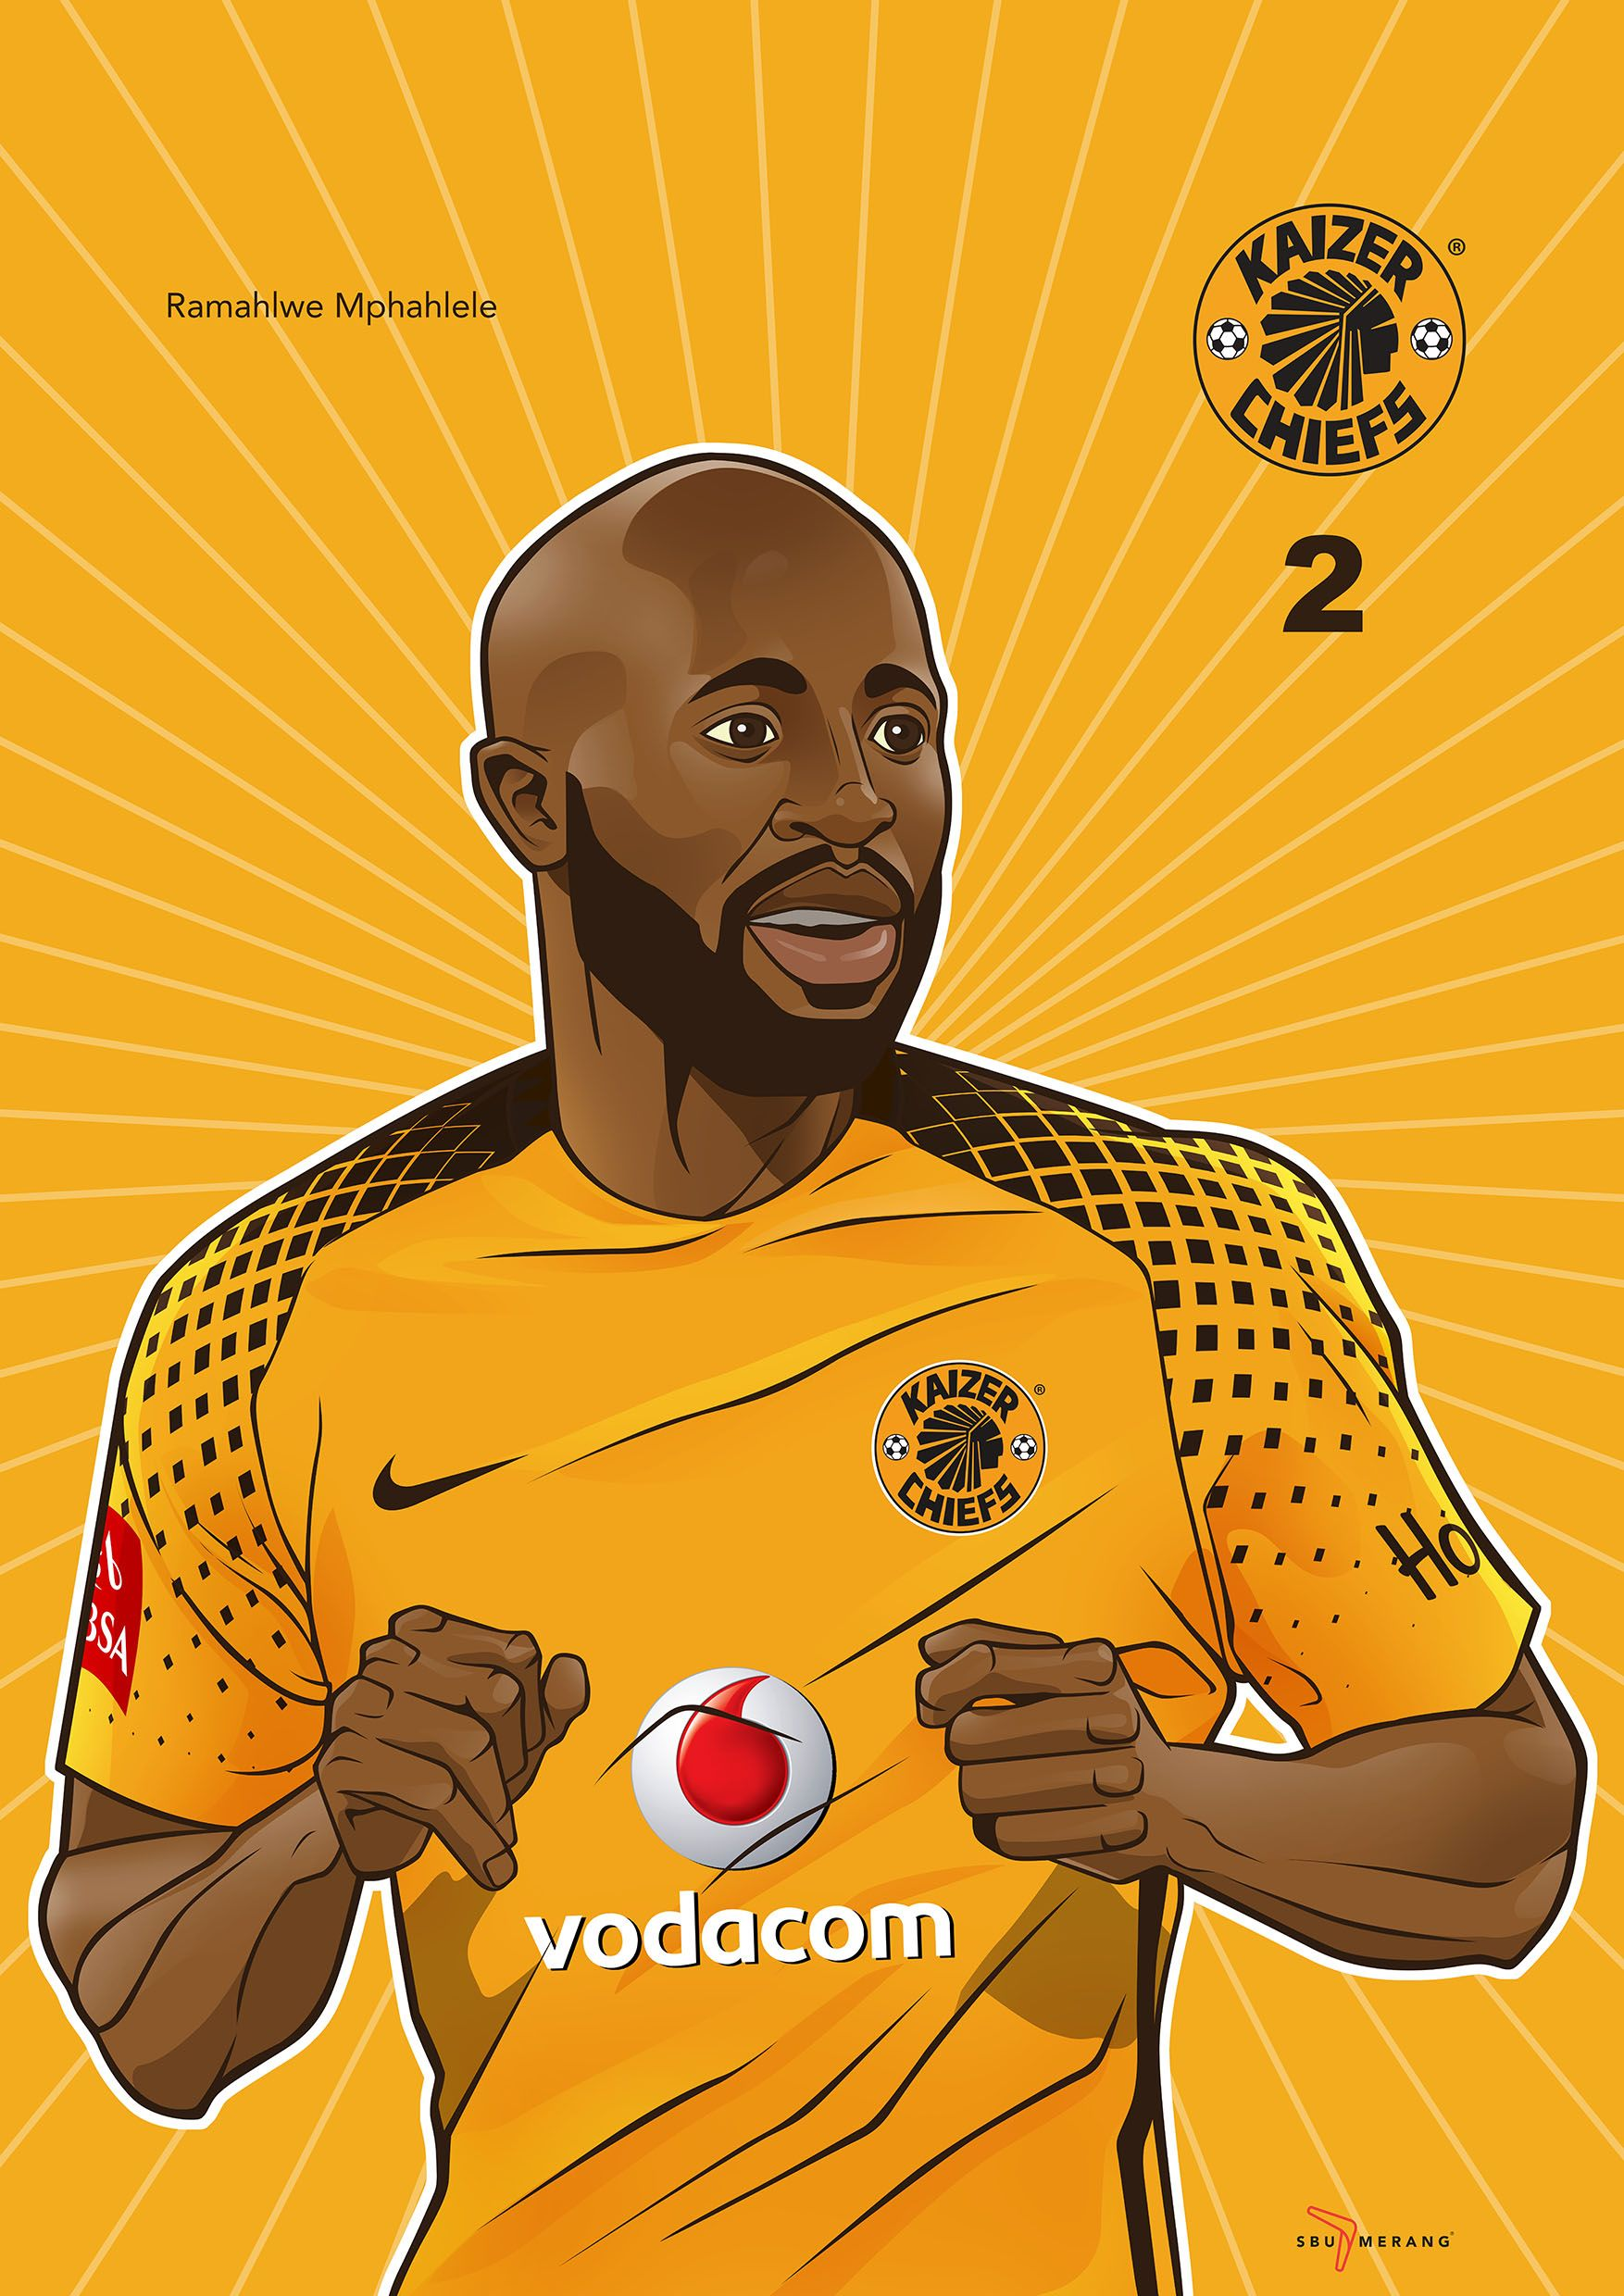 Iwisa Kaizer Chiefs Players Poster Collection Ramahlwe Mphahlele Kaizer Chiefs Soccer Team Chief